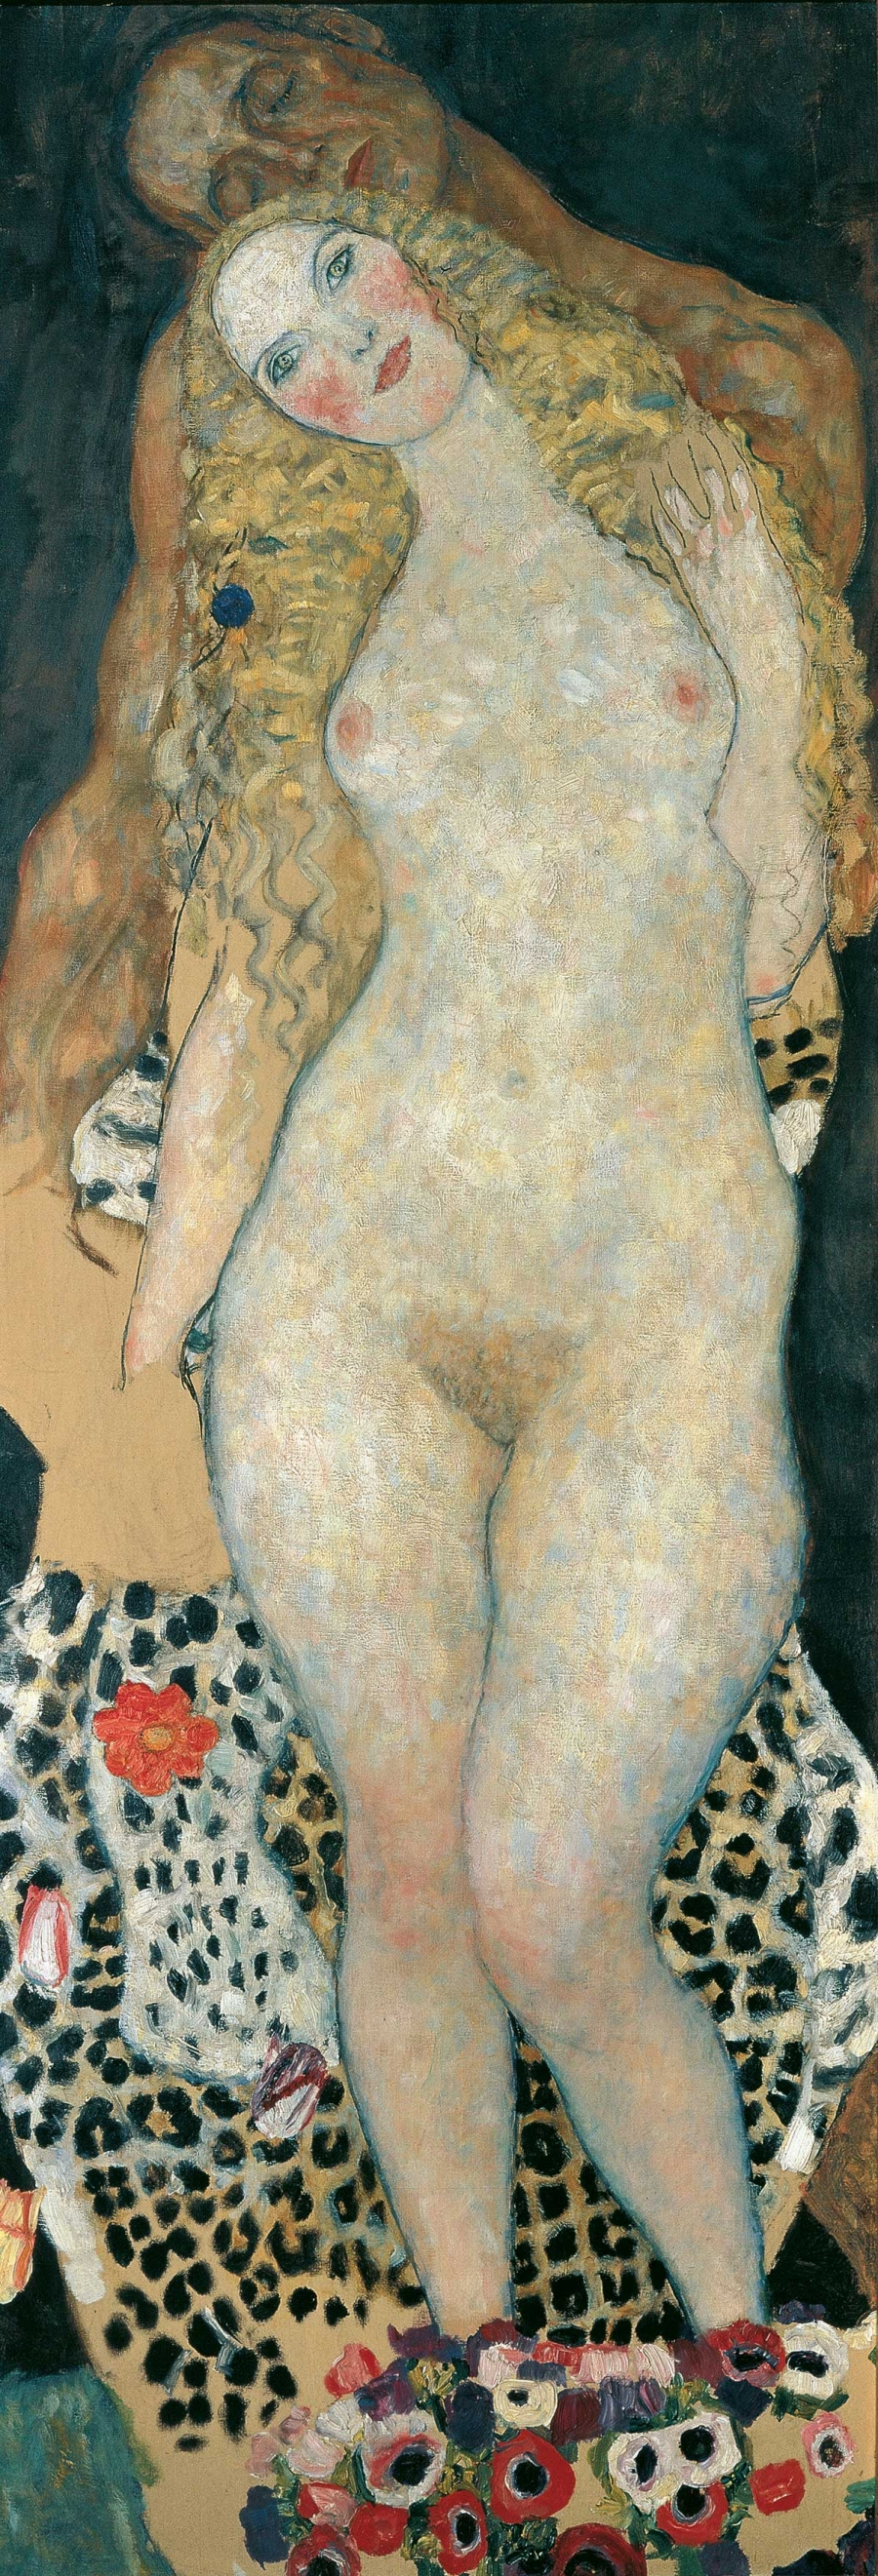 u201cVisiting Masterpiece Gustav Klimtu0027s Adam and Eveu201d